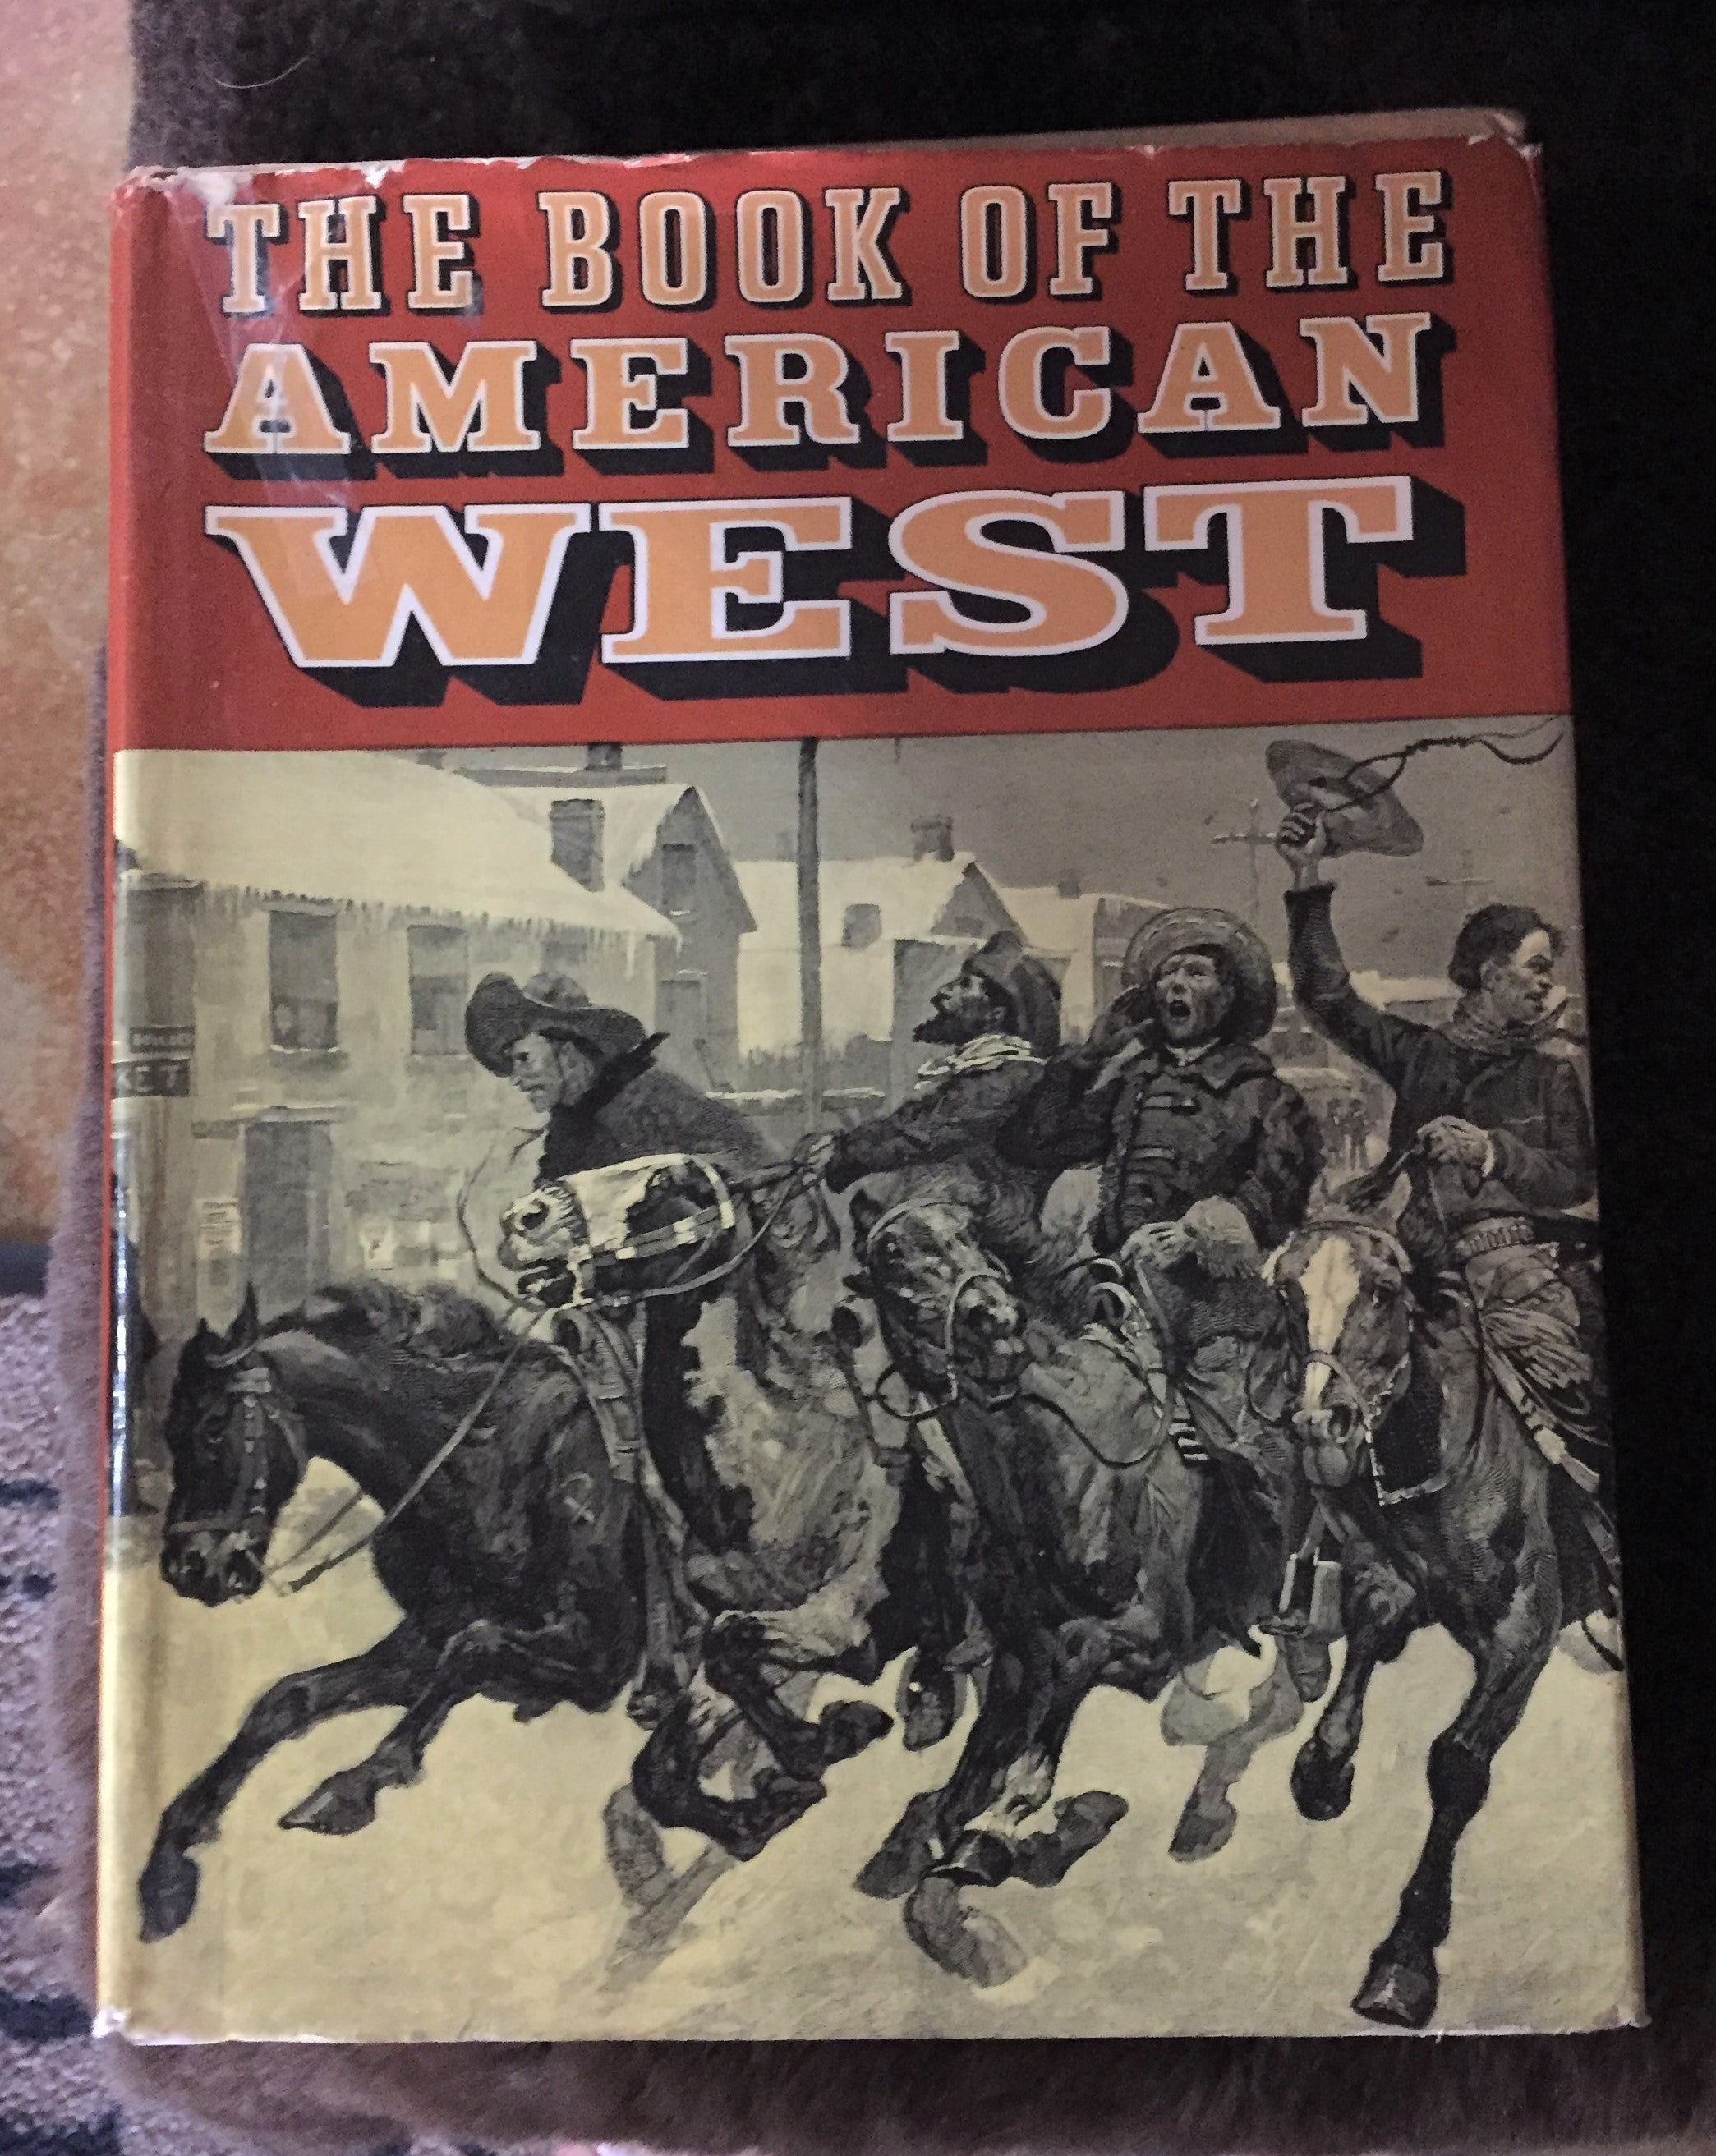 BOOKS - The Book of the American West